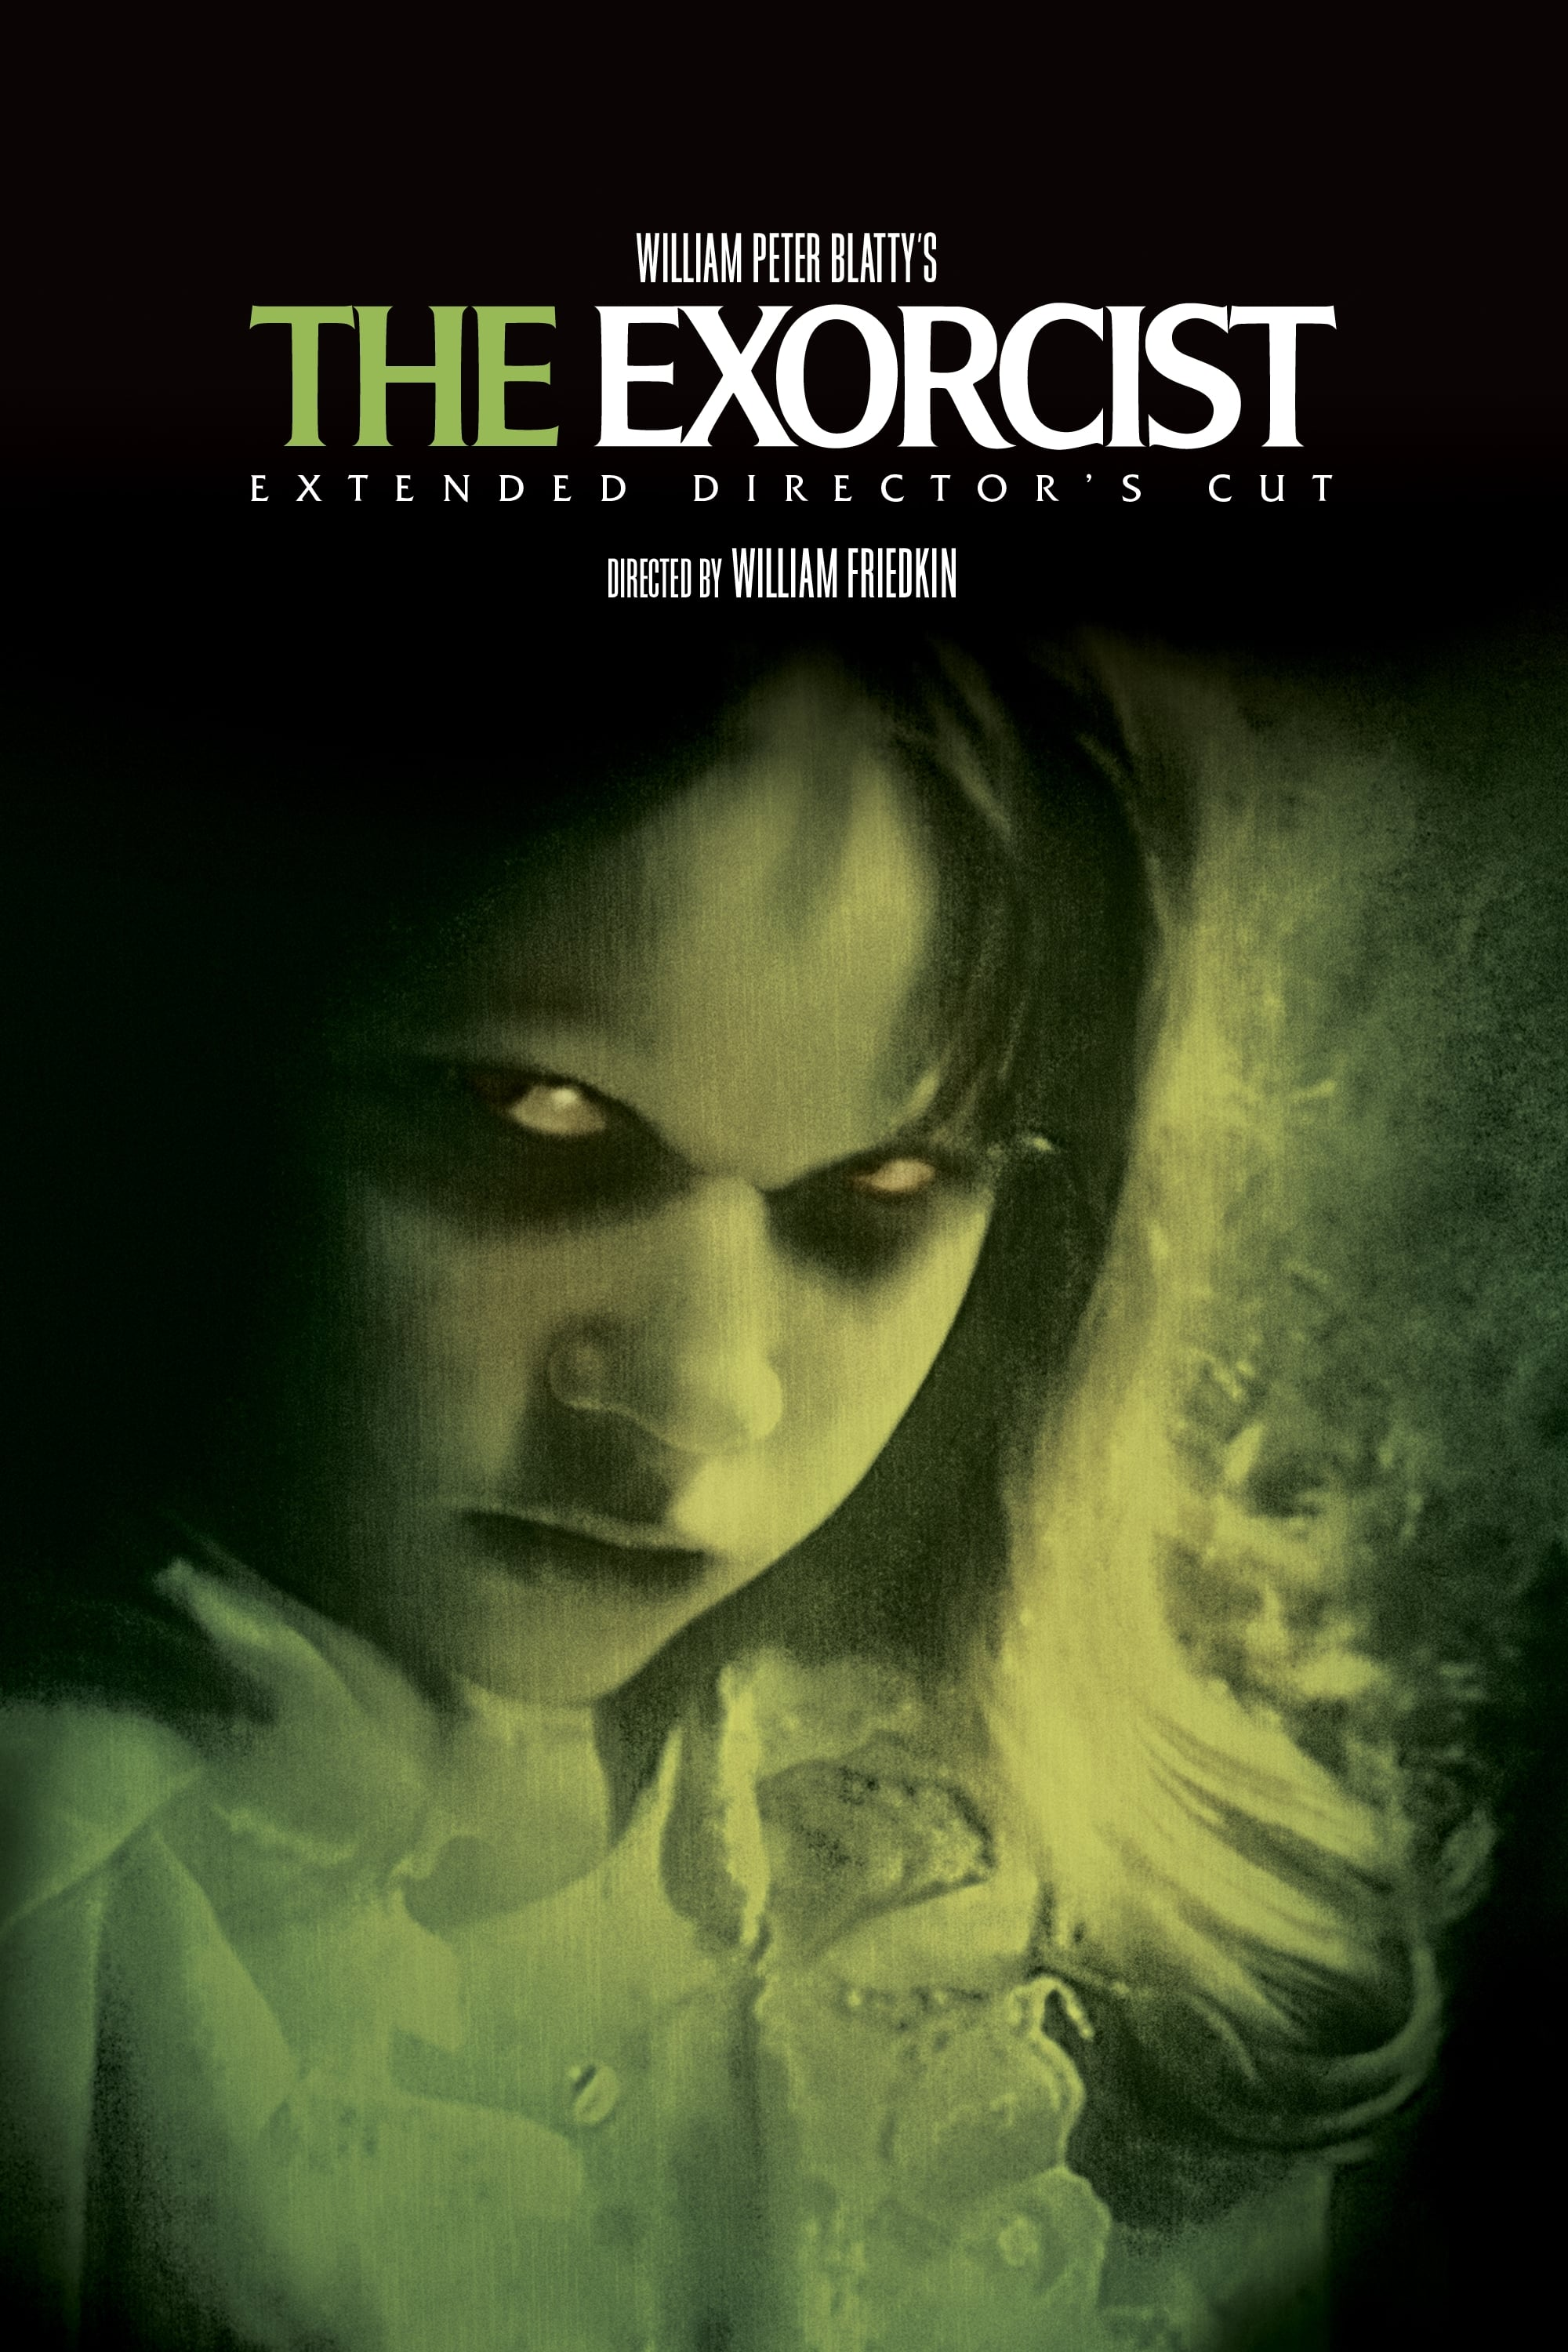 The Exorcist Full Movie Online Free Streaming - Movie